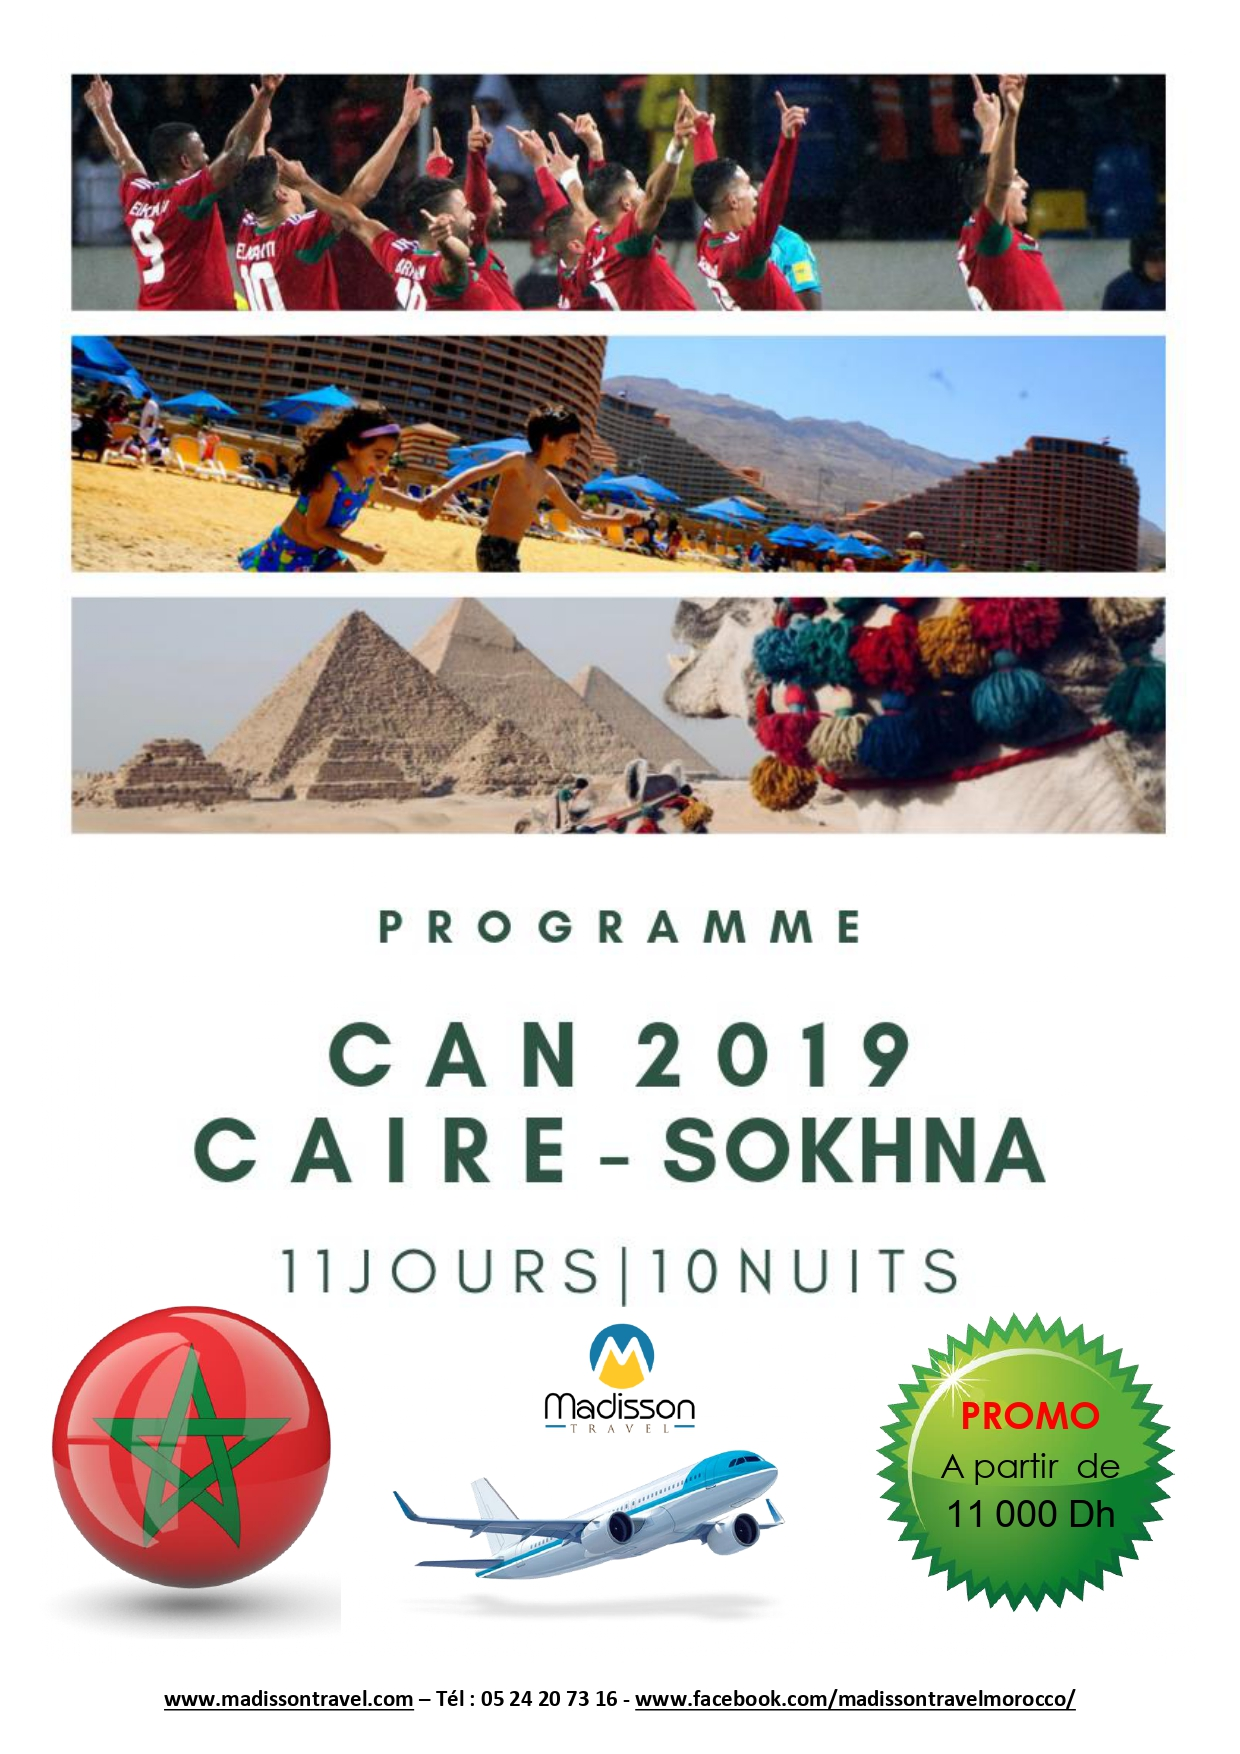 Programme CAN CAIRE - SOKHNA 2019